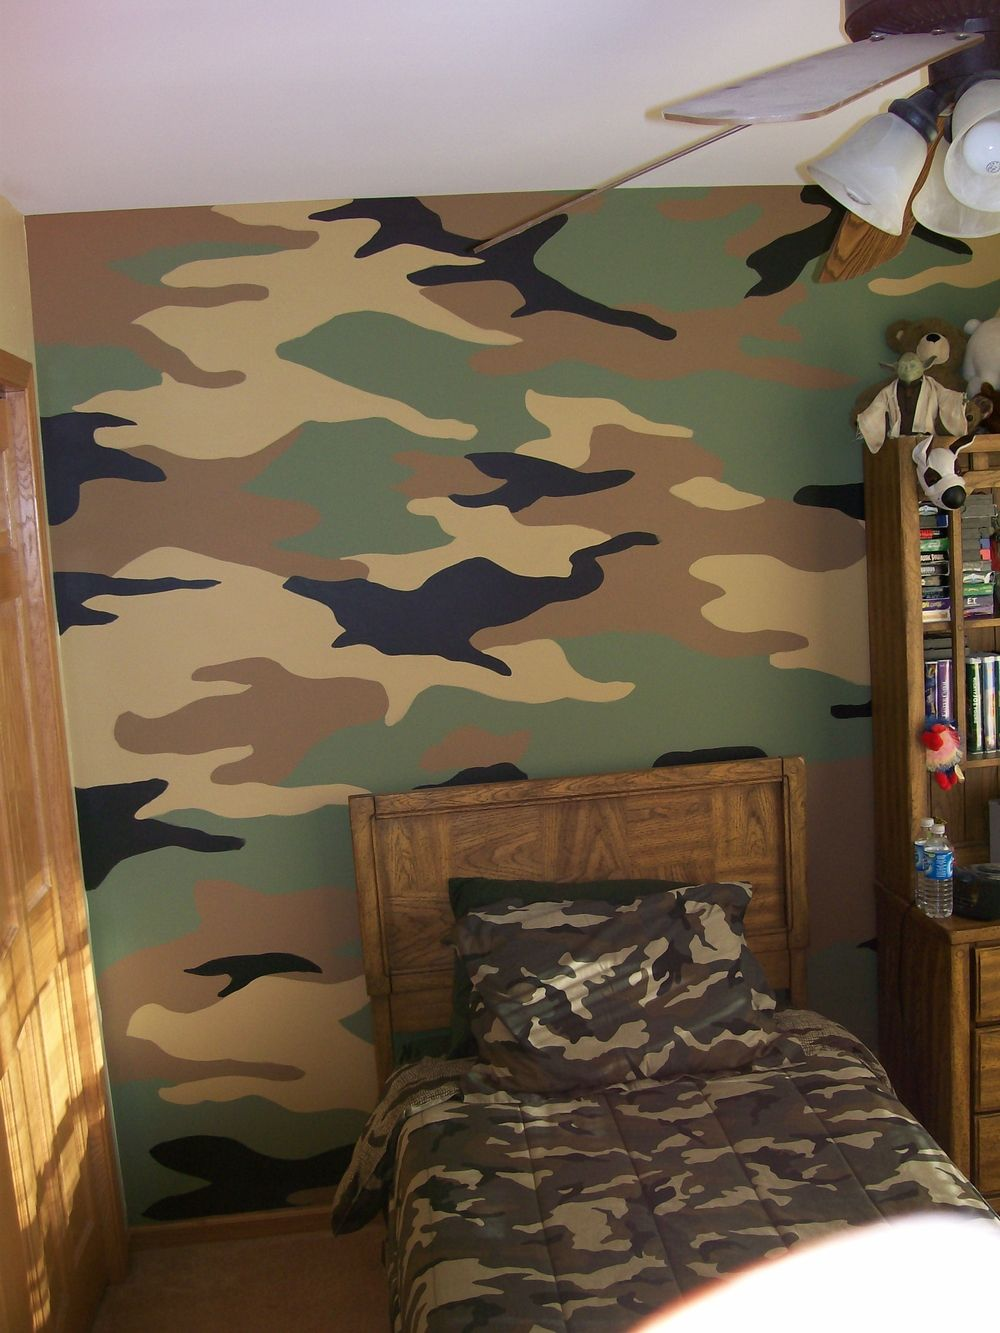 Camouflage Wall Mural Decorative Painting Karl